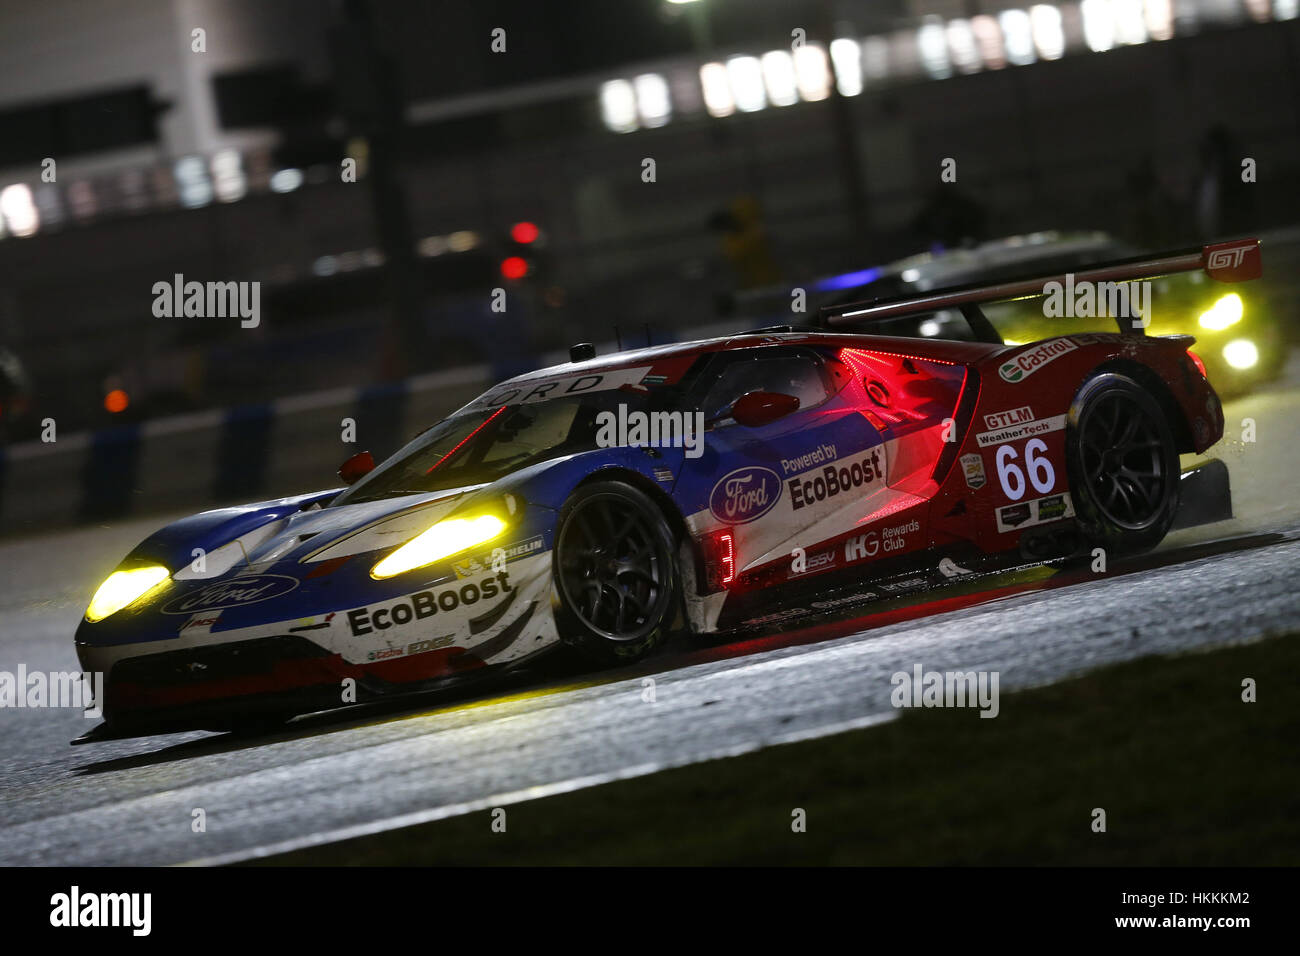 Daytona Beach Usa Th Jan  The Chip Ganassi Racing Ford Gt Races Through The Turns At The Rolex  At Daytona At The International Speedway In